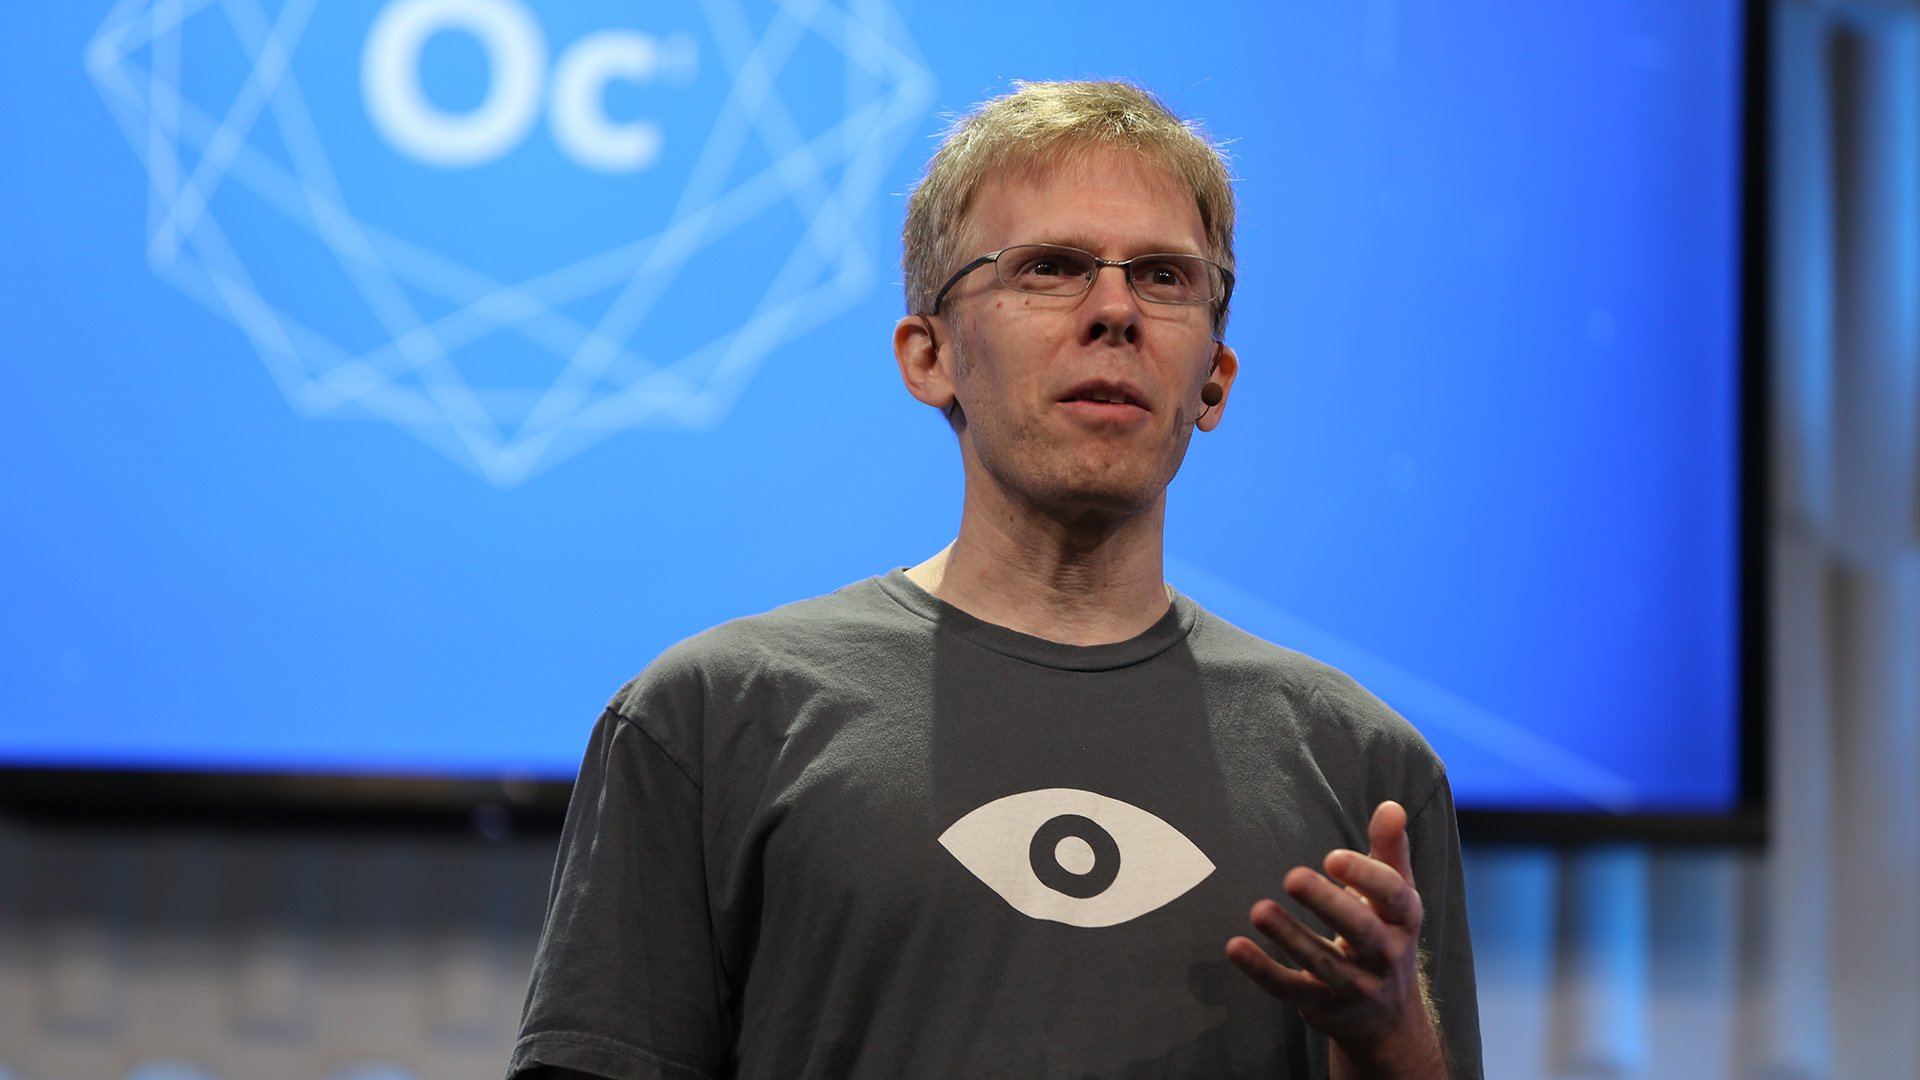 john carmack telling people not to buy a phone for vr